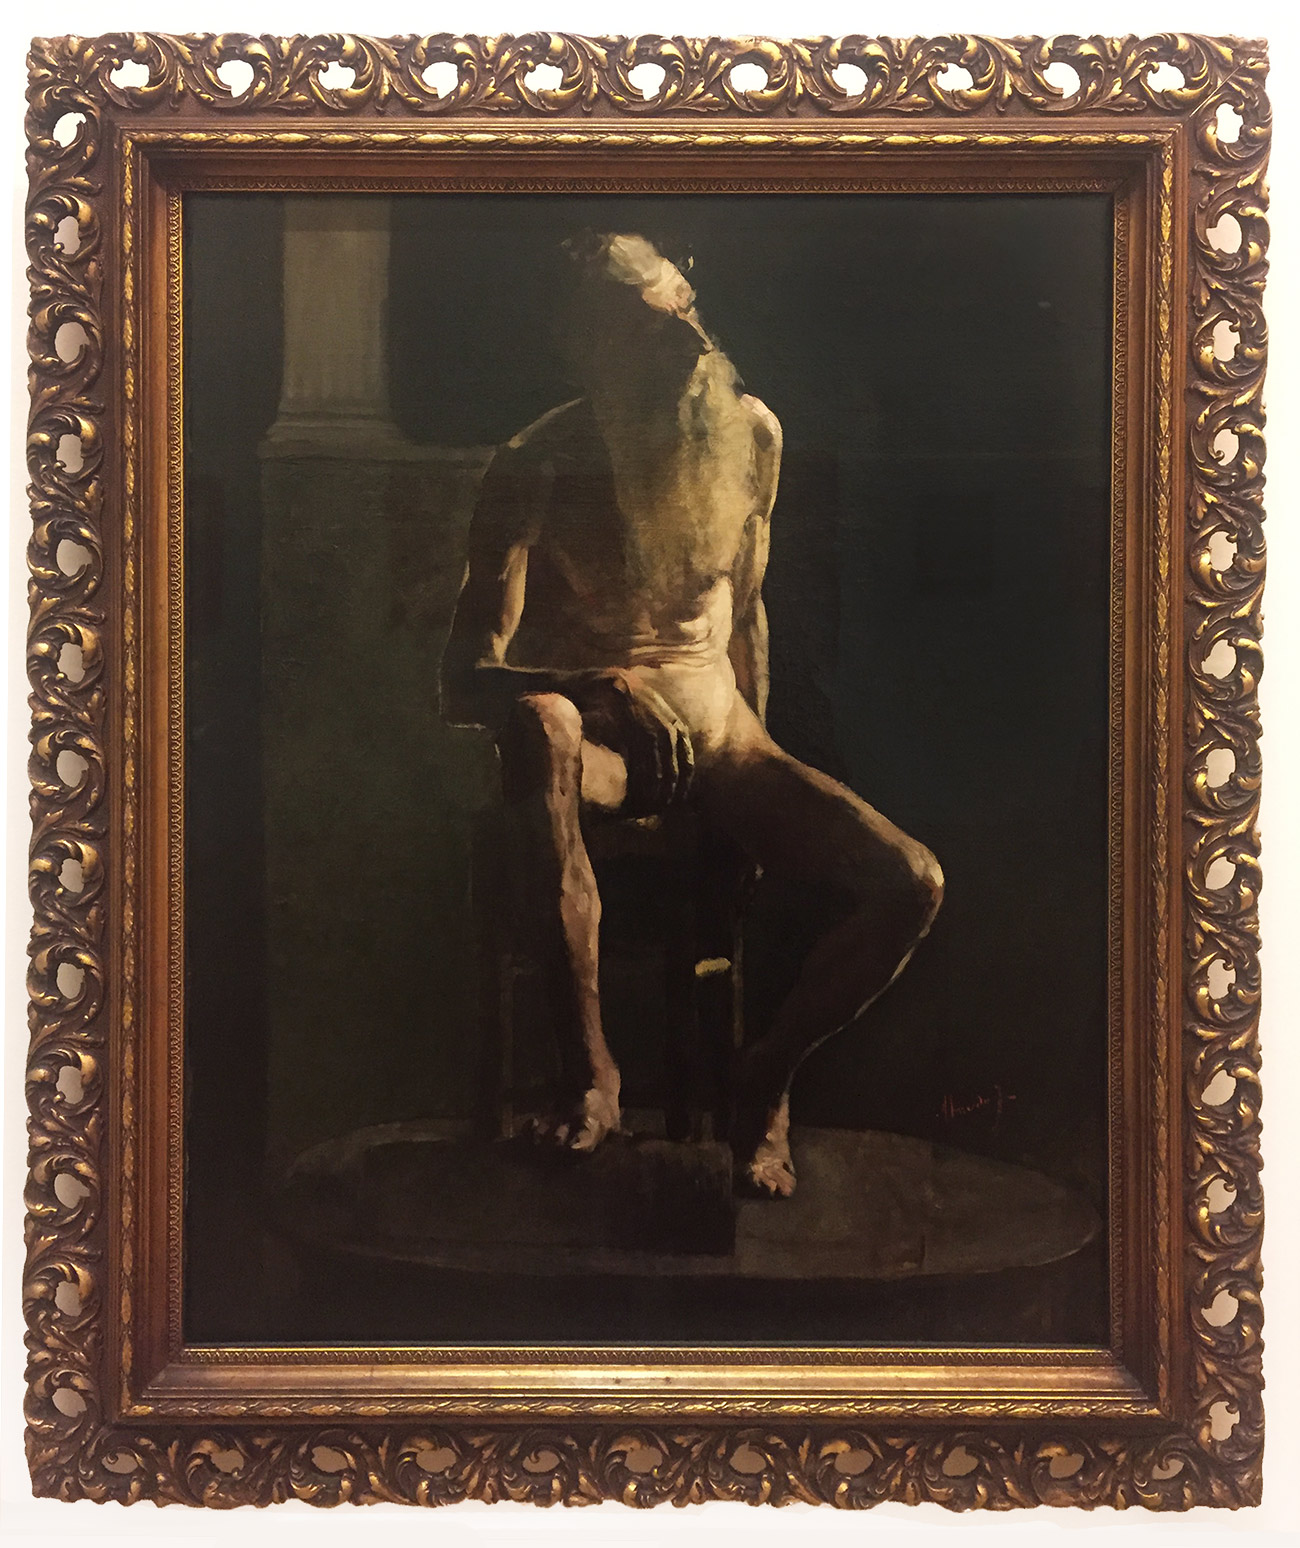 In a gilded frame, a dark painting of an anguished looking, emaciated man seated on a chair and looking up to his left, to the source of a dim light